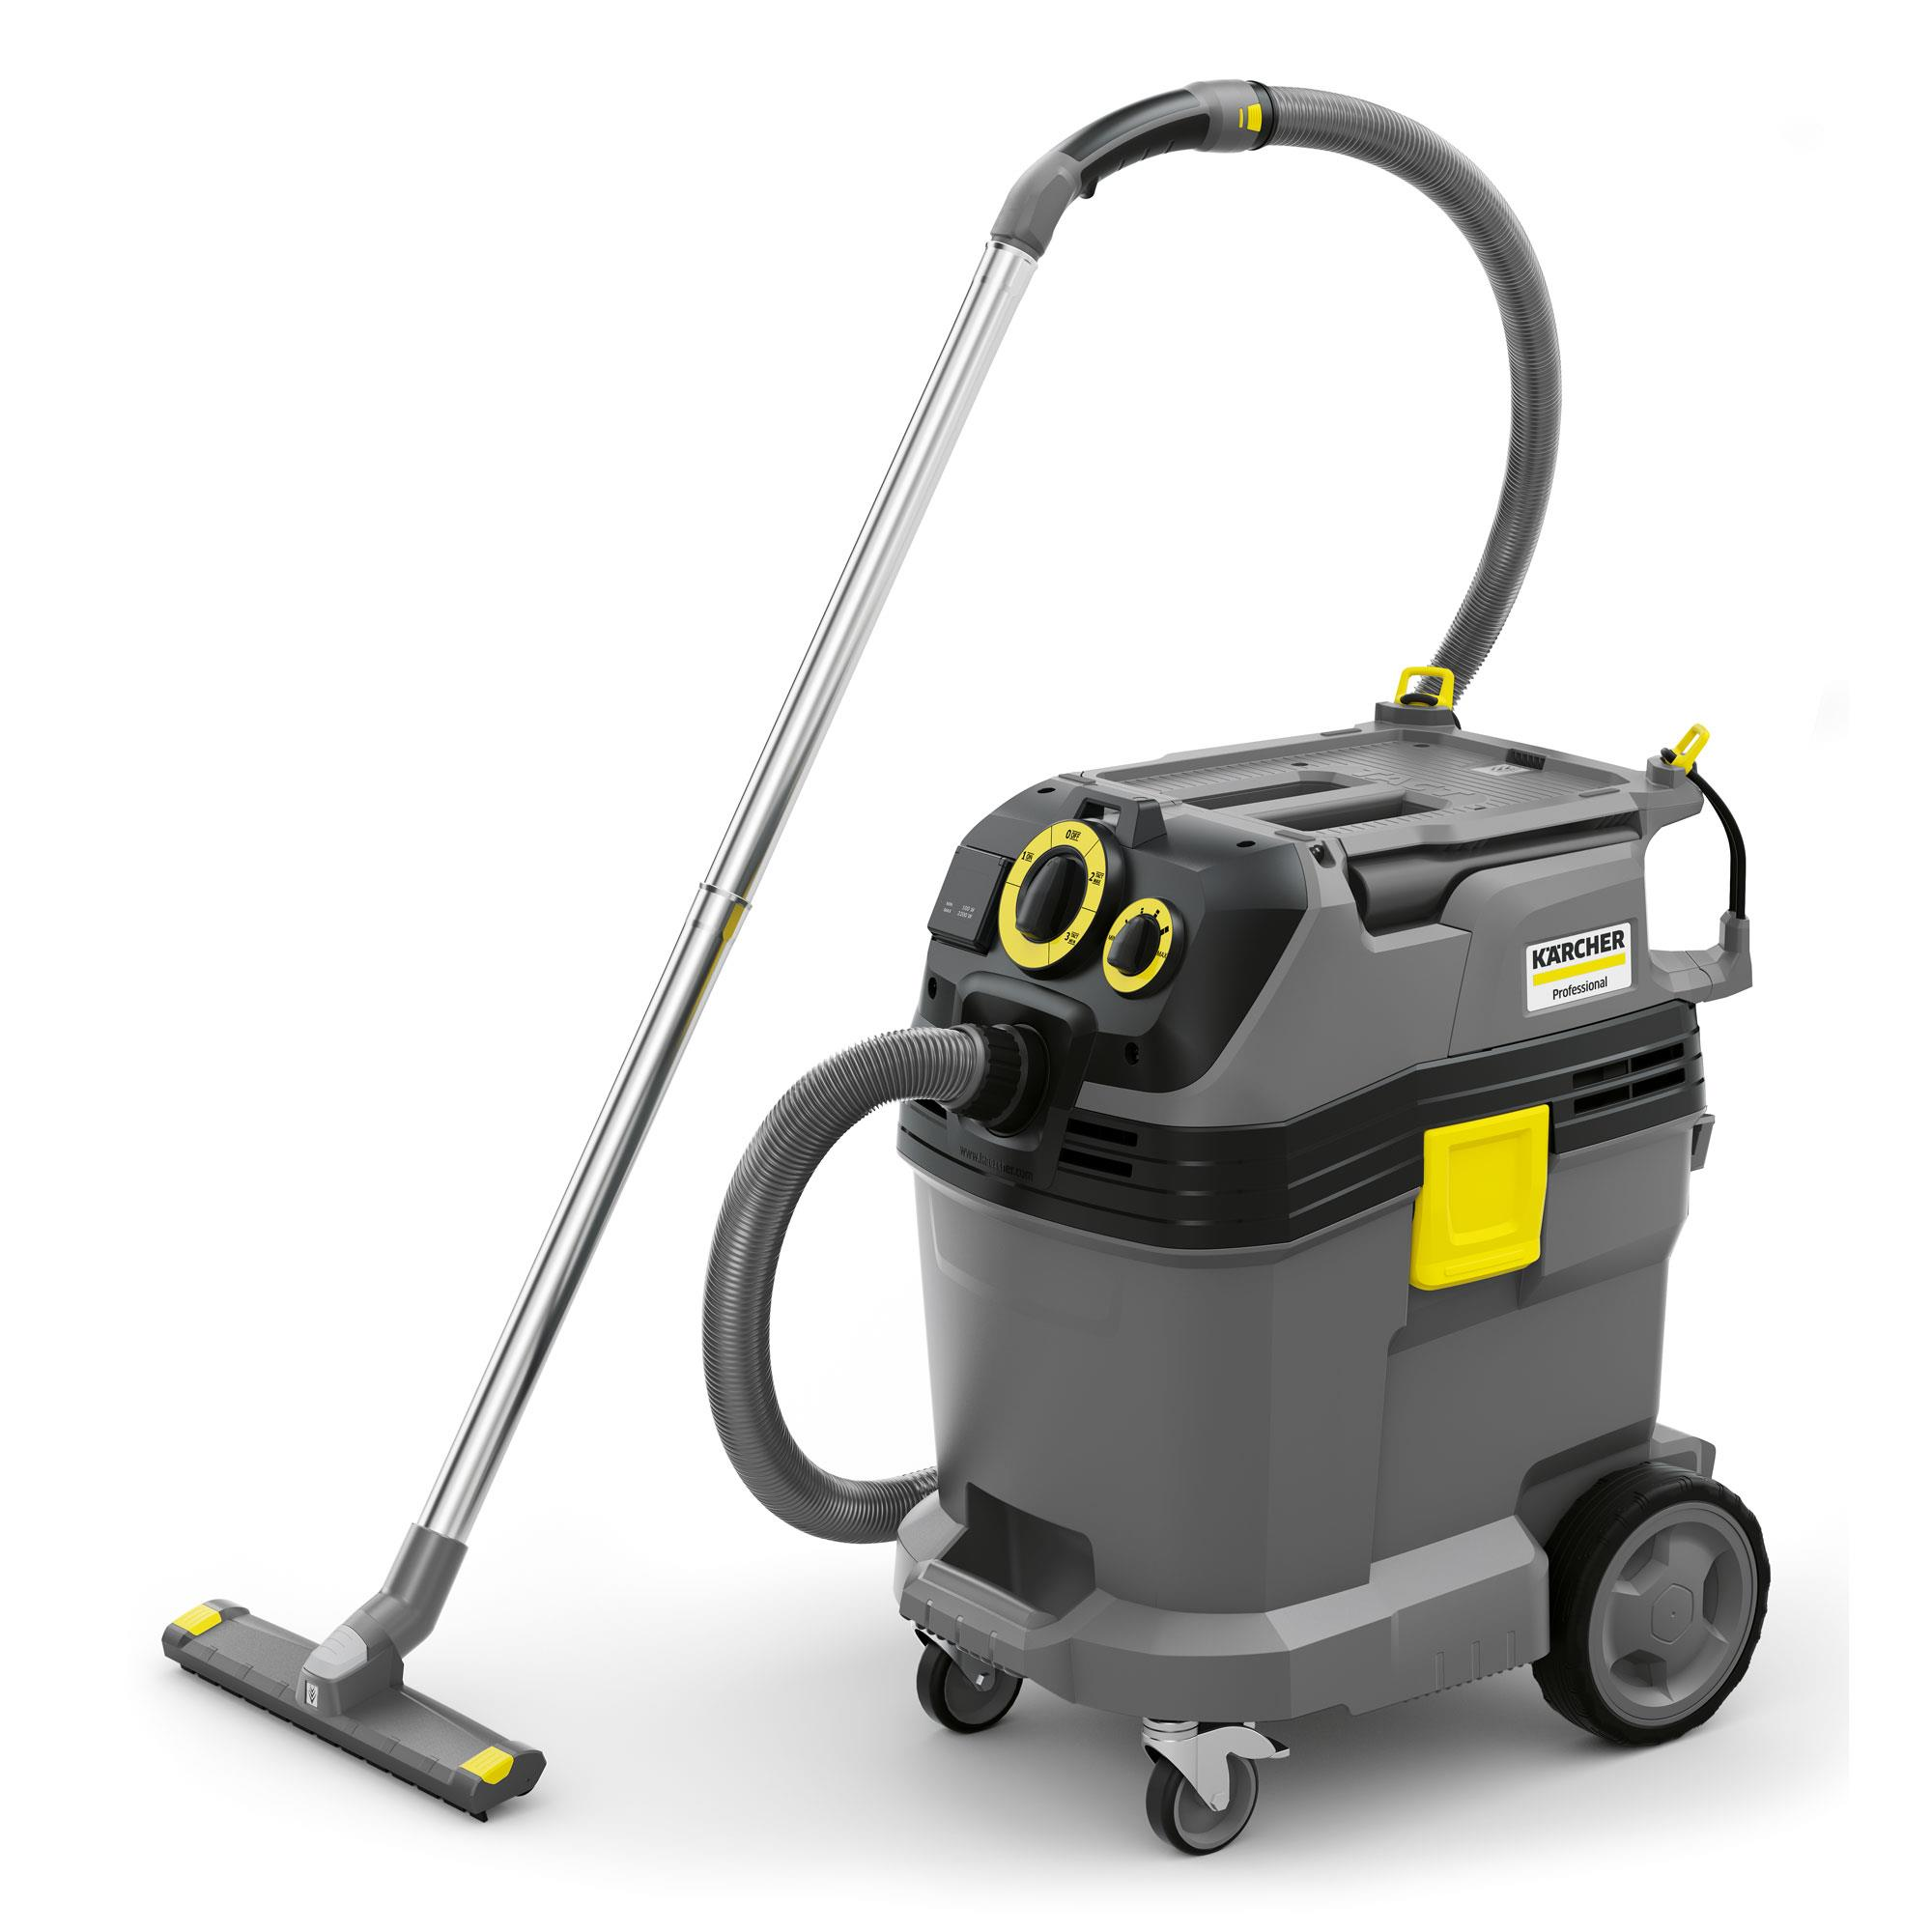 NT 40/1 Tact Te L 1.148-311.0 KARCHER - KARCHER PREMIER CENTER